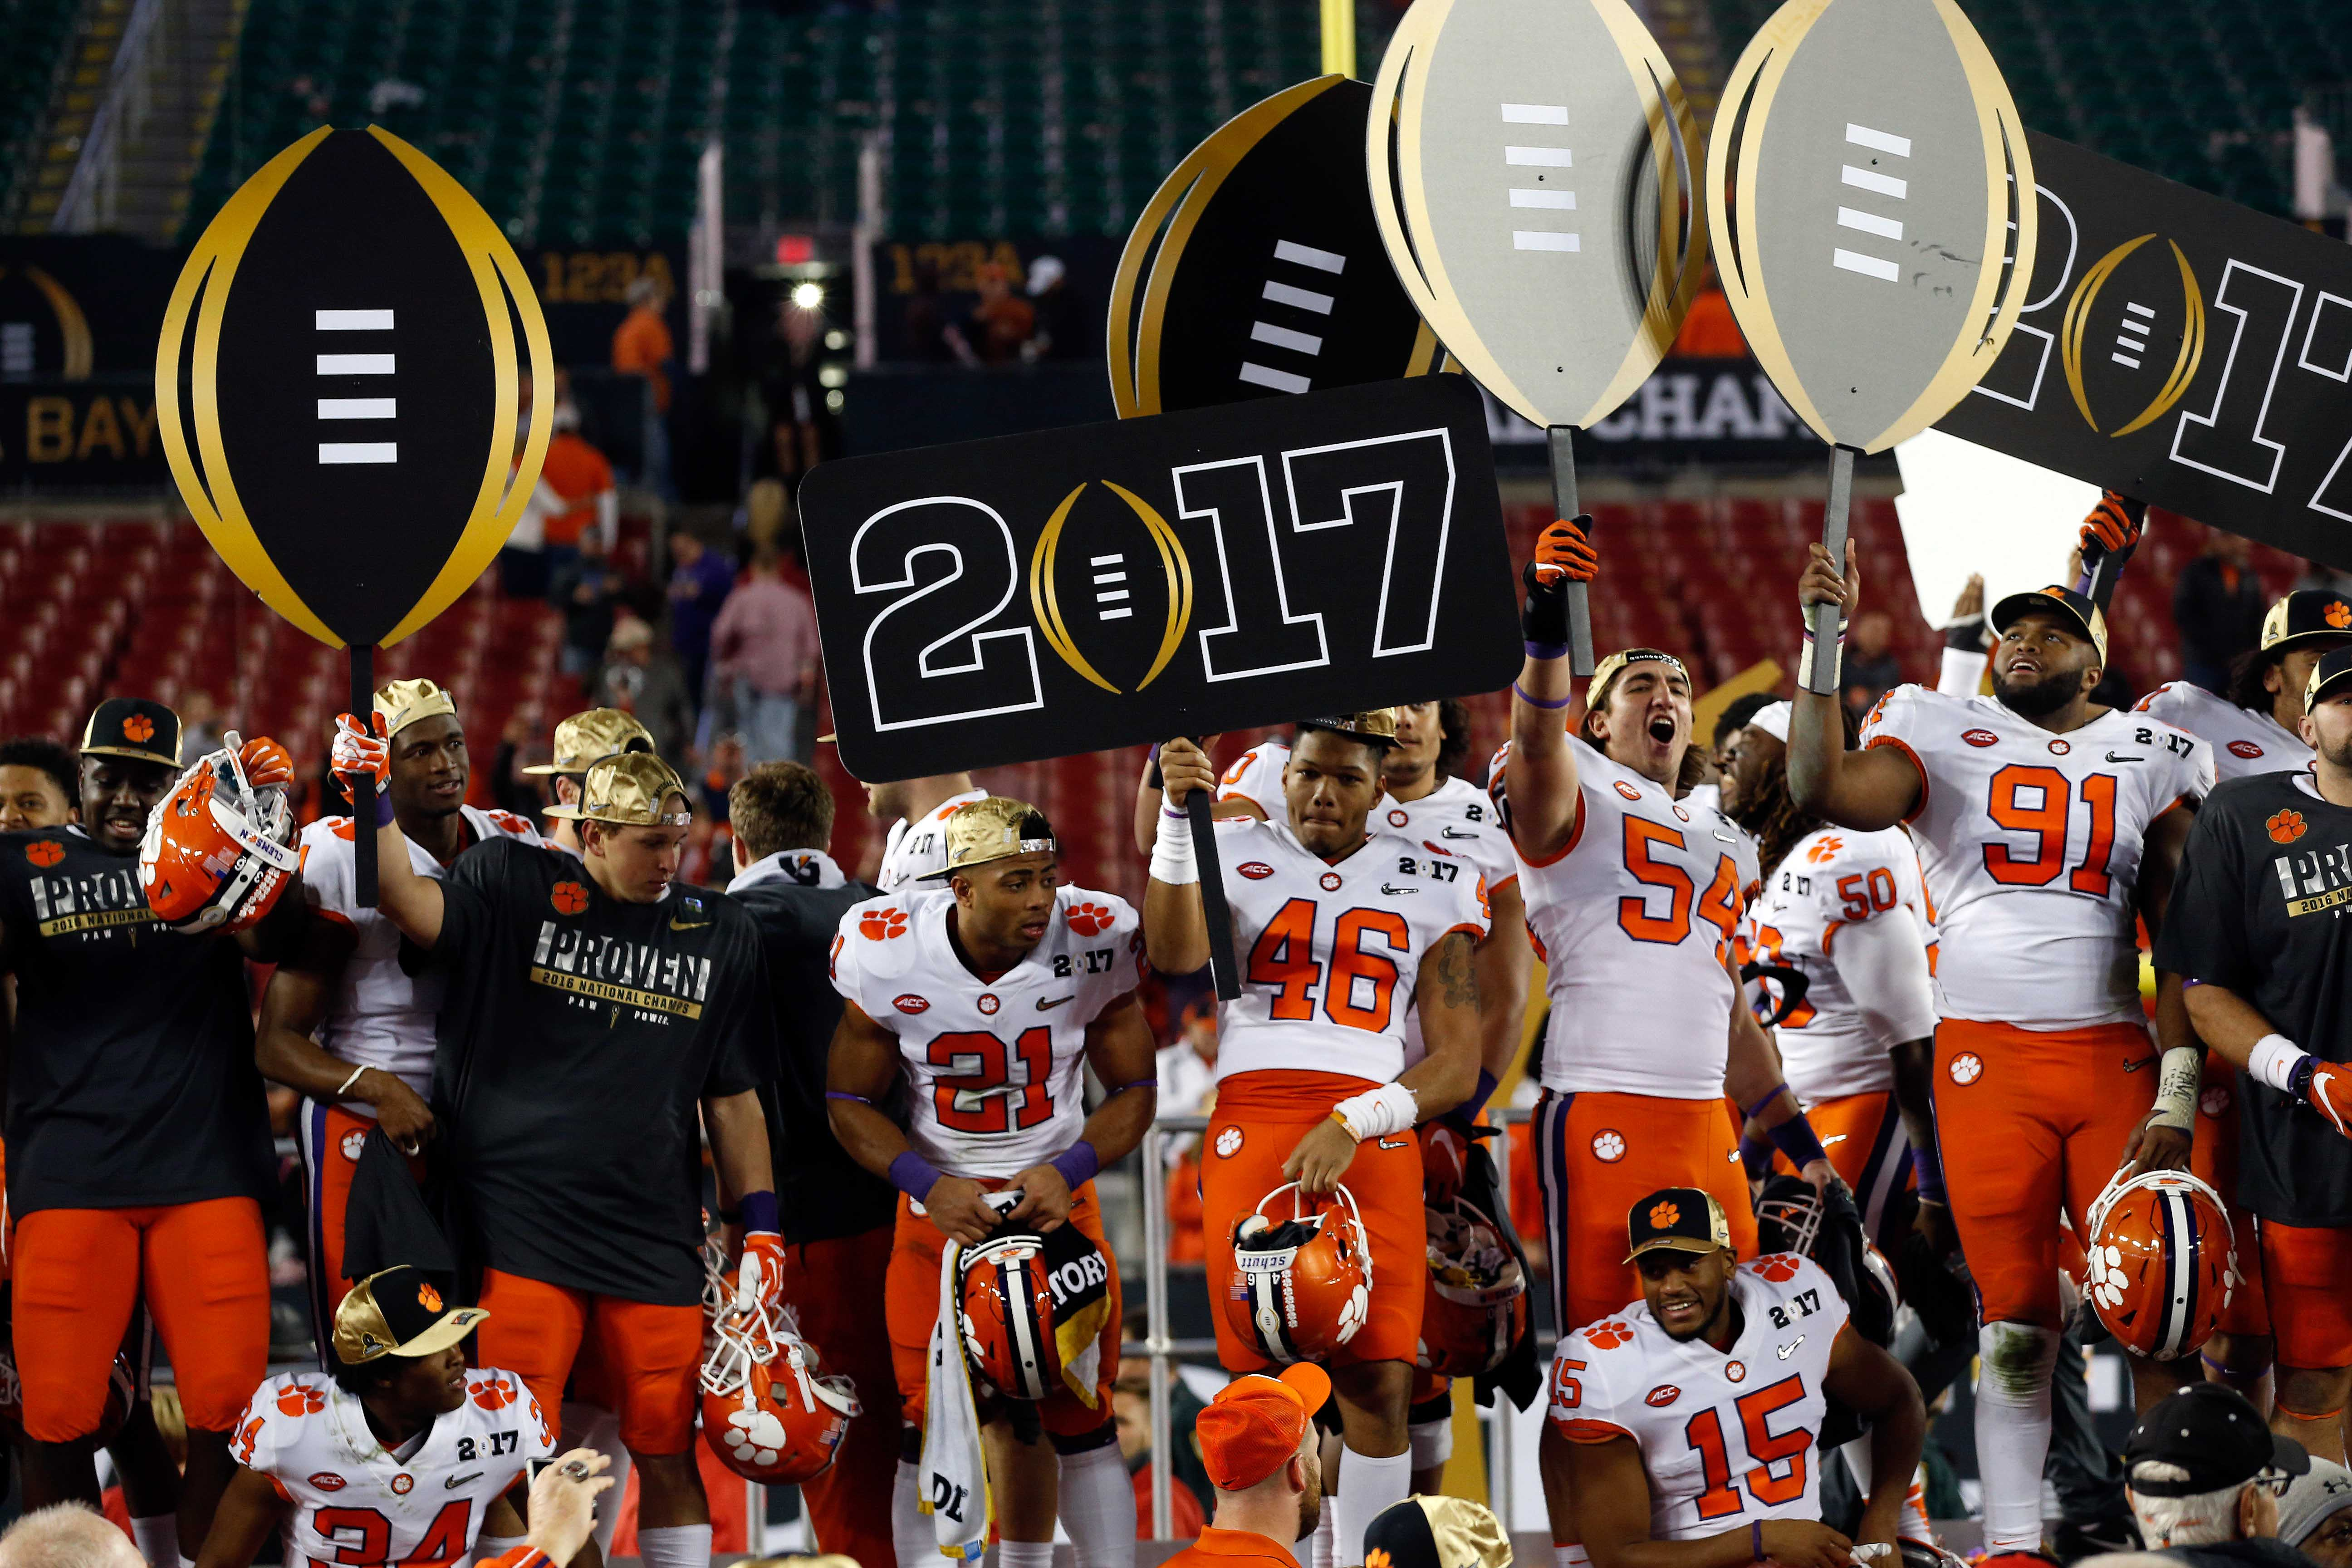 15 Biggest College Football Storylines To Watch In 2017